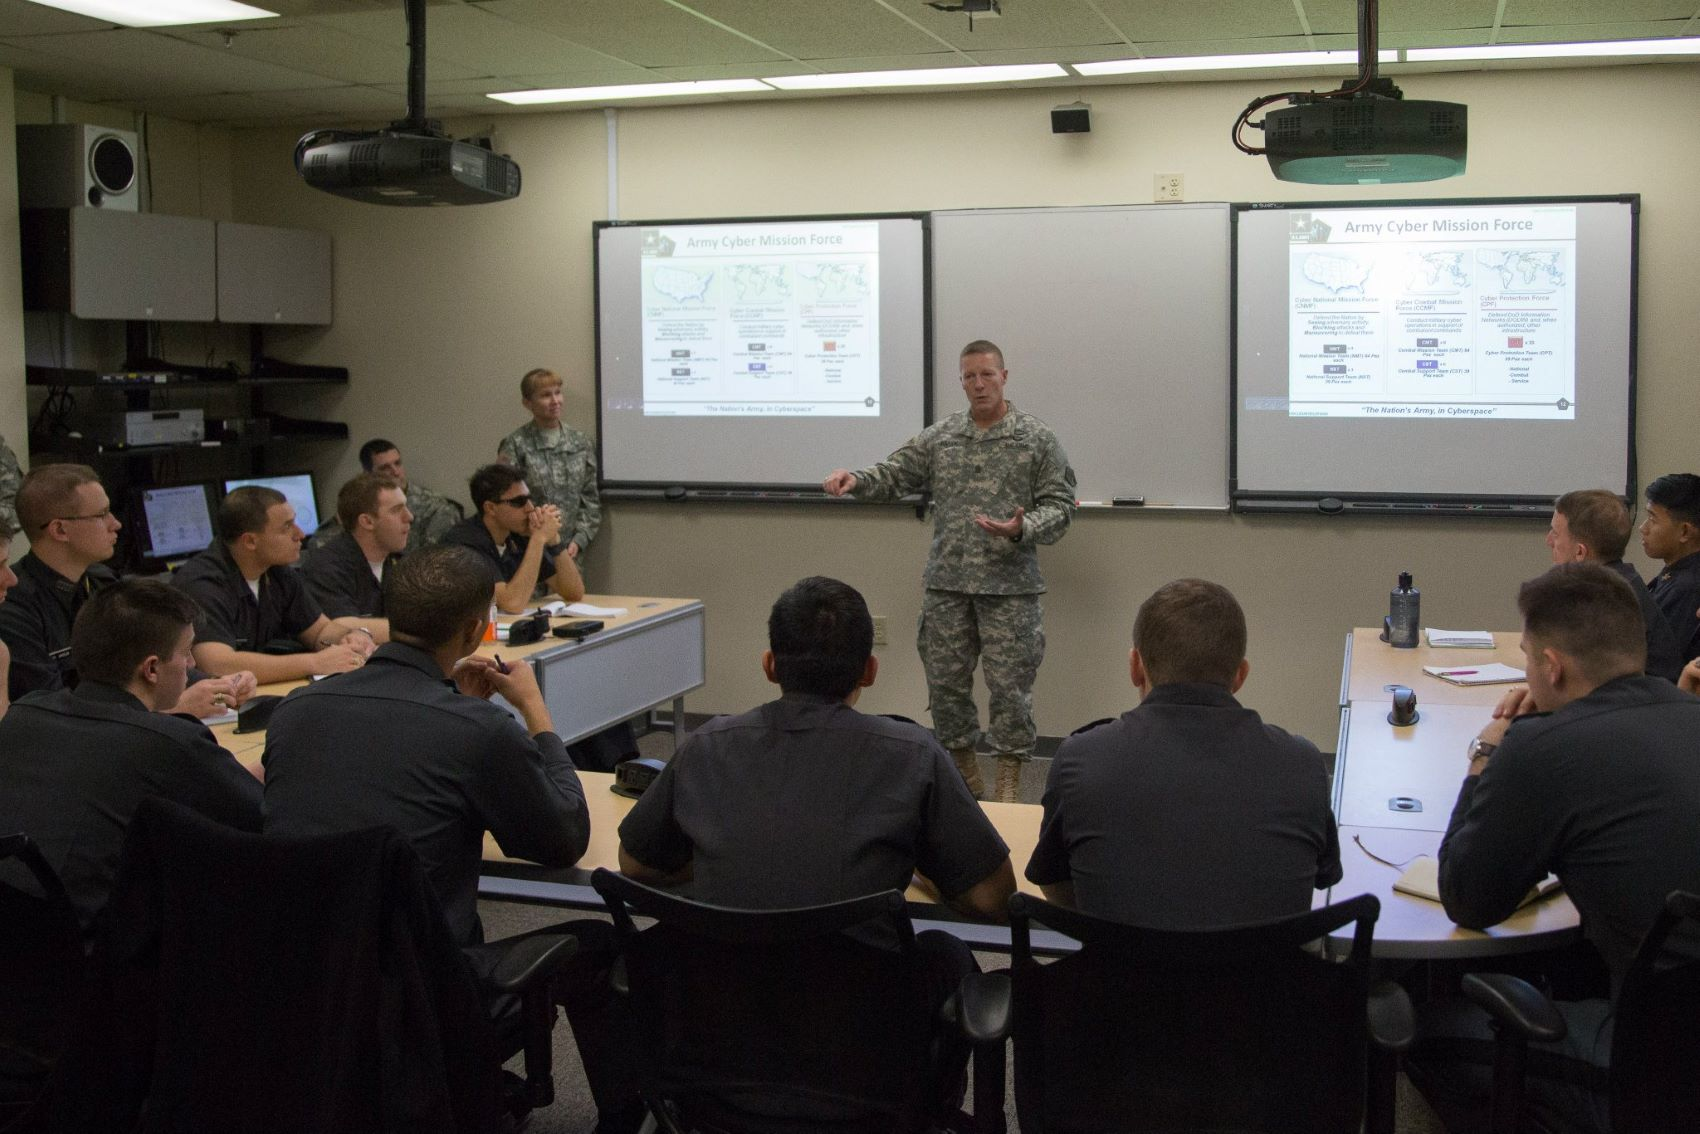 WestPoint students attend a cyber security lecture